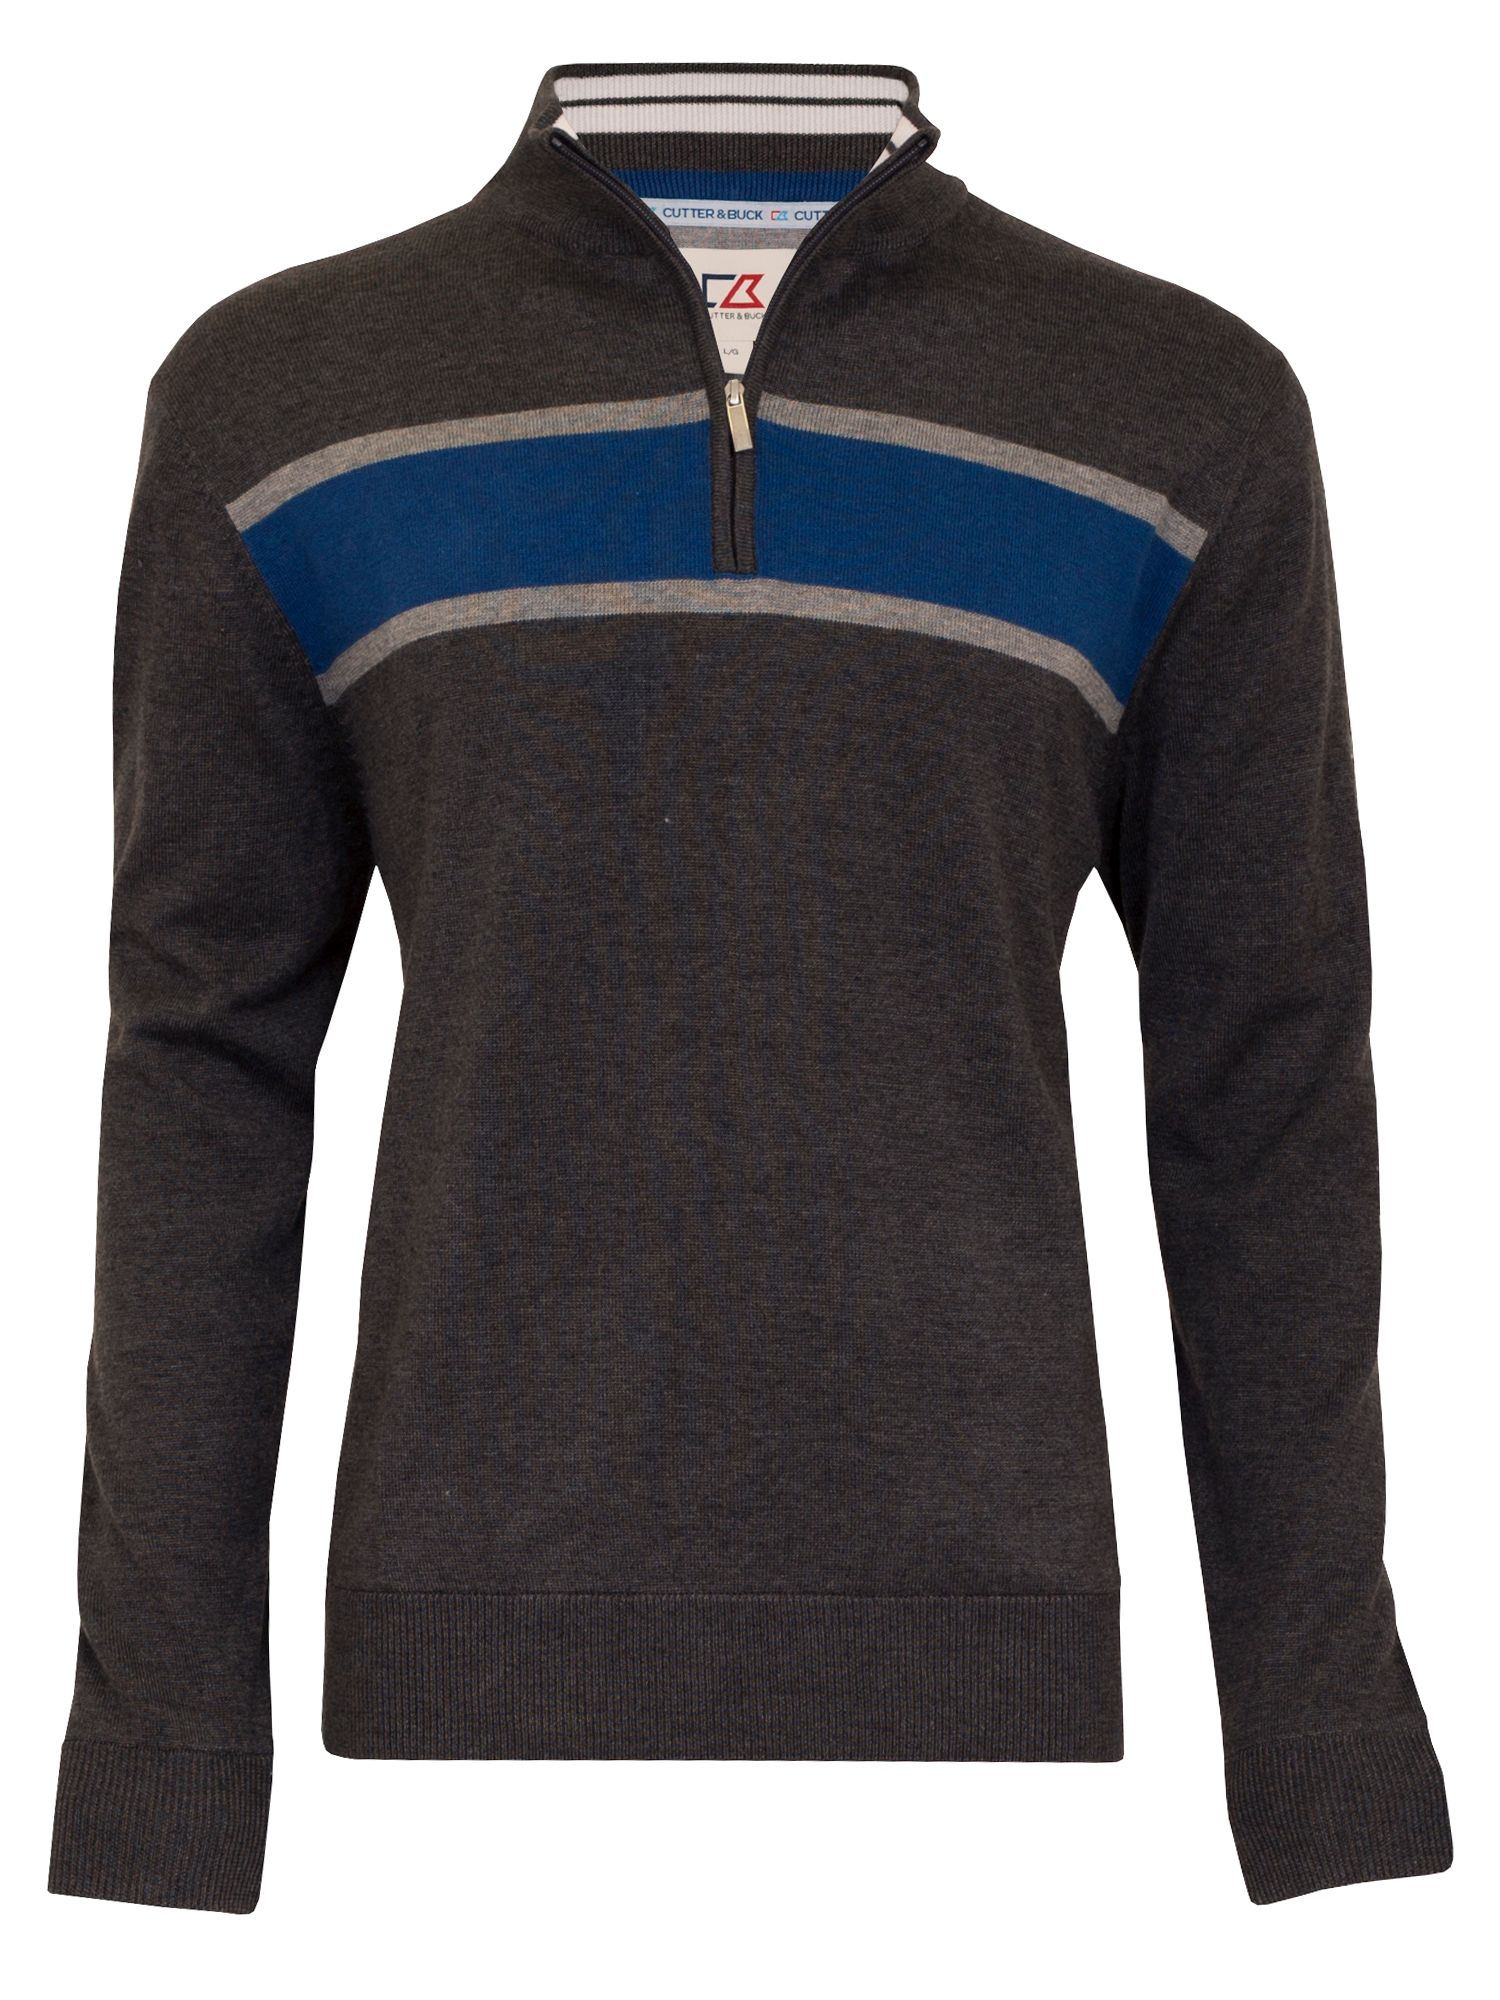 Cutter and Buck Men's Cutter and Buck Chest Stripe Windblock Sweater, Charcoal